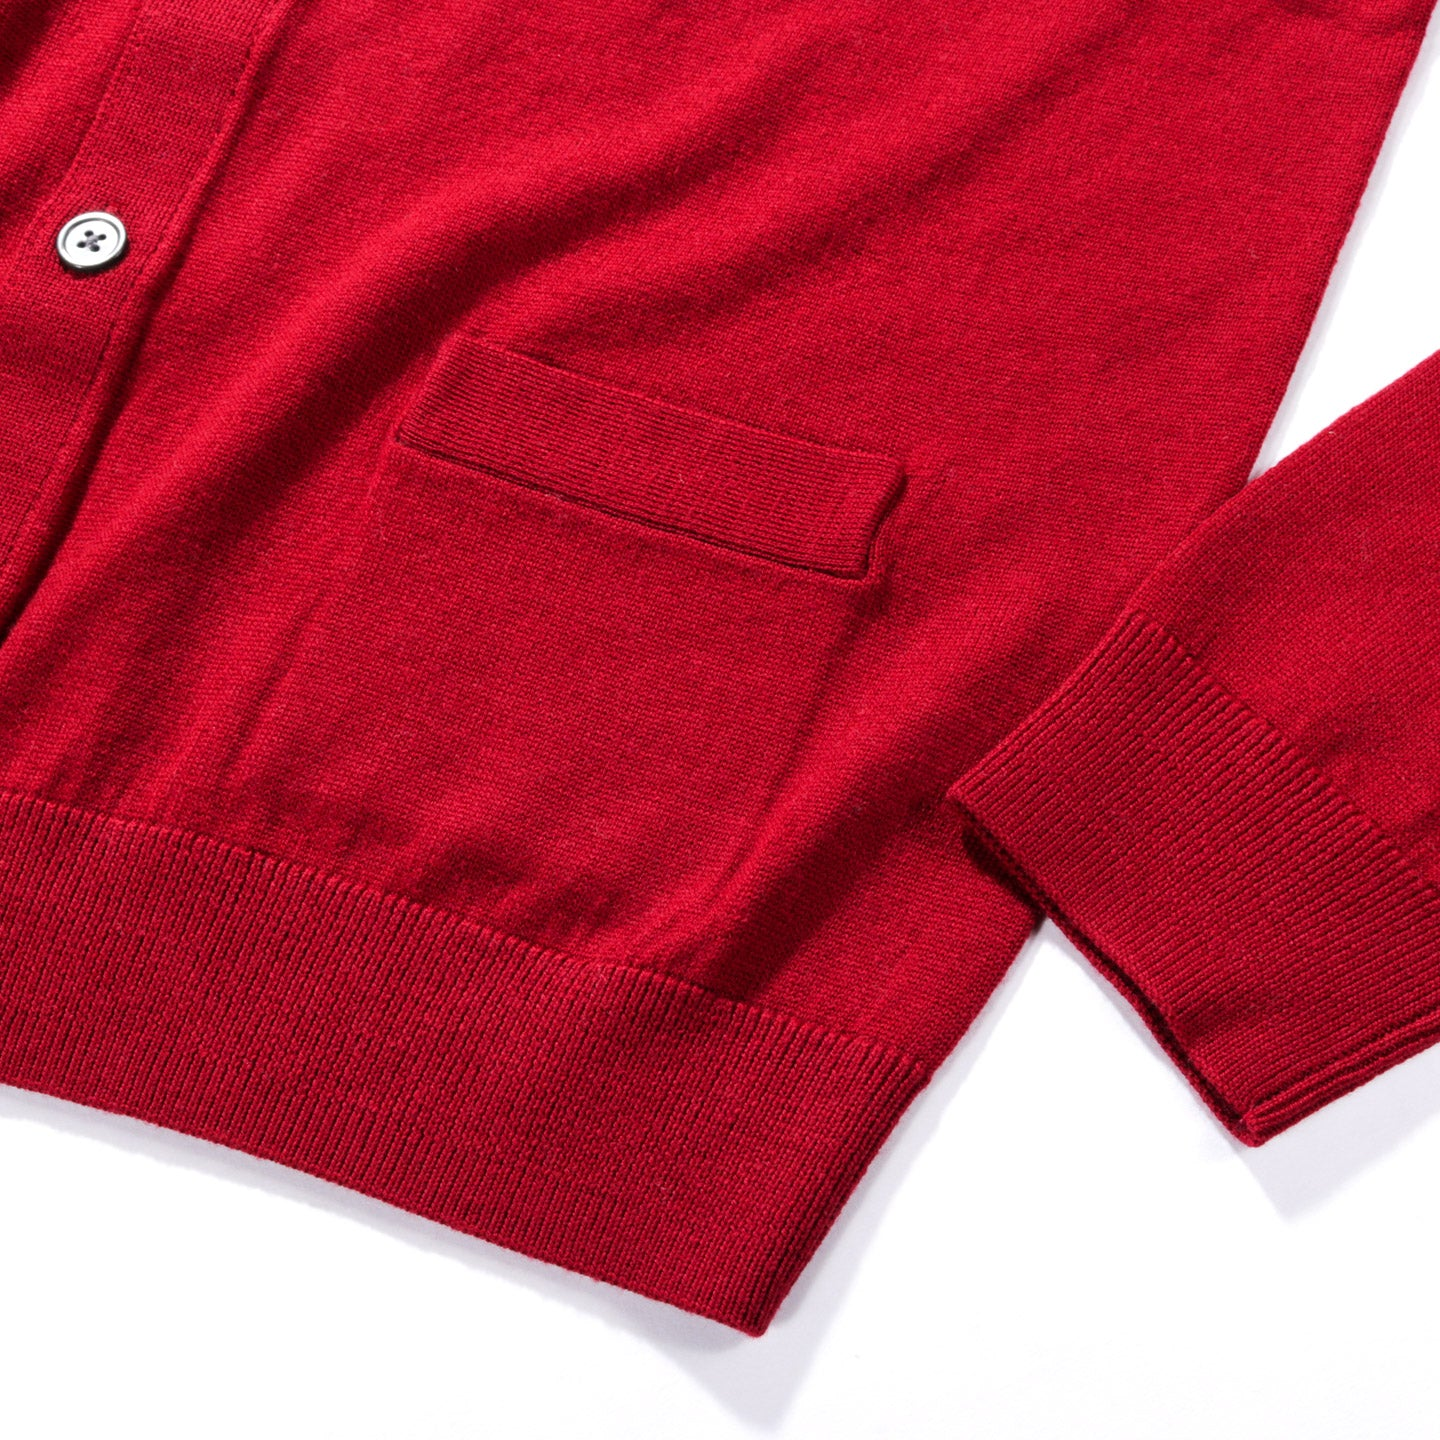 METICULOUS KNITWEAR WOODSTOCK CARDIGAN RED